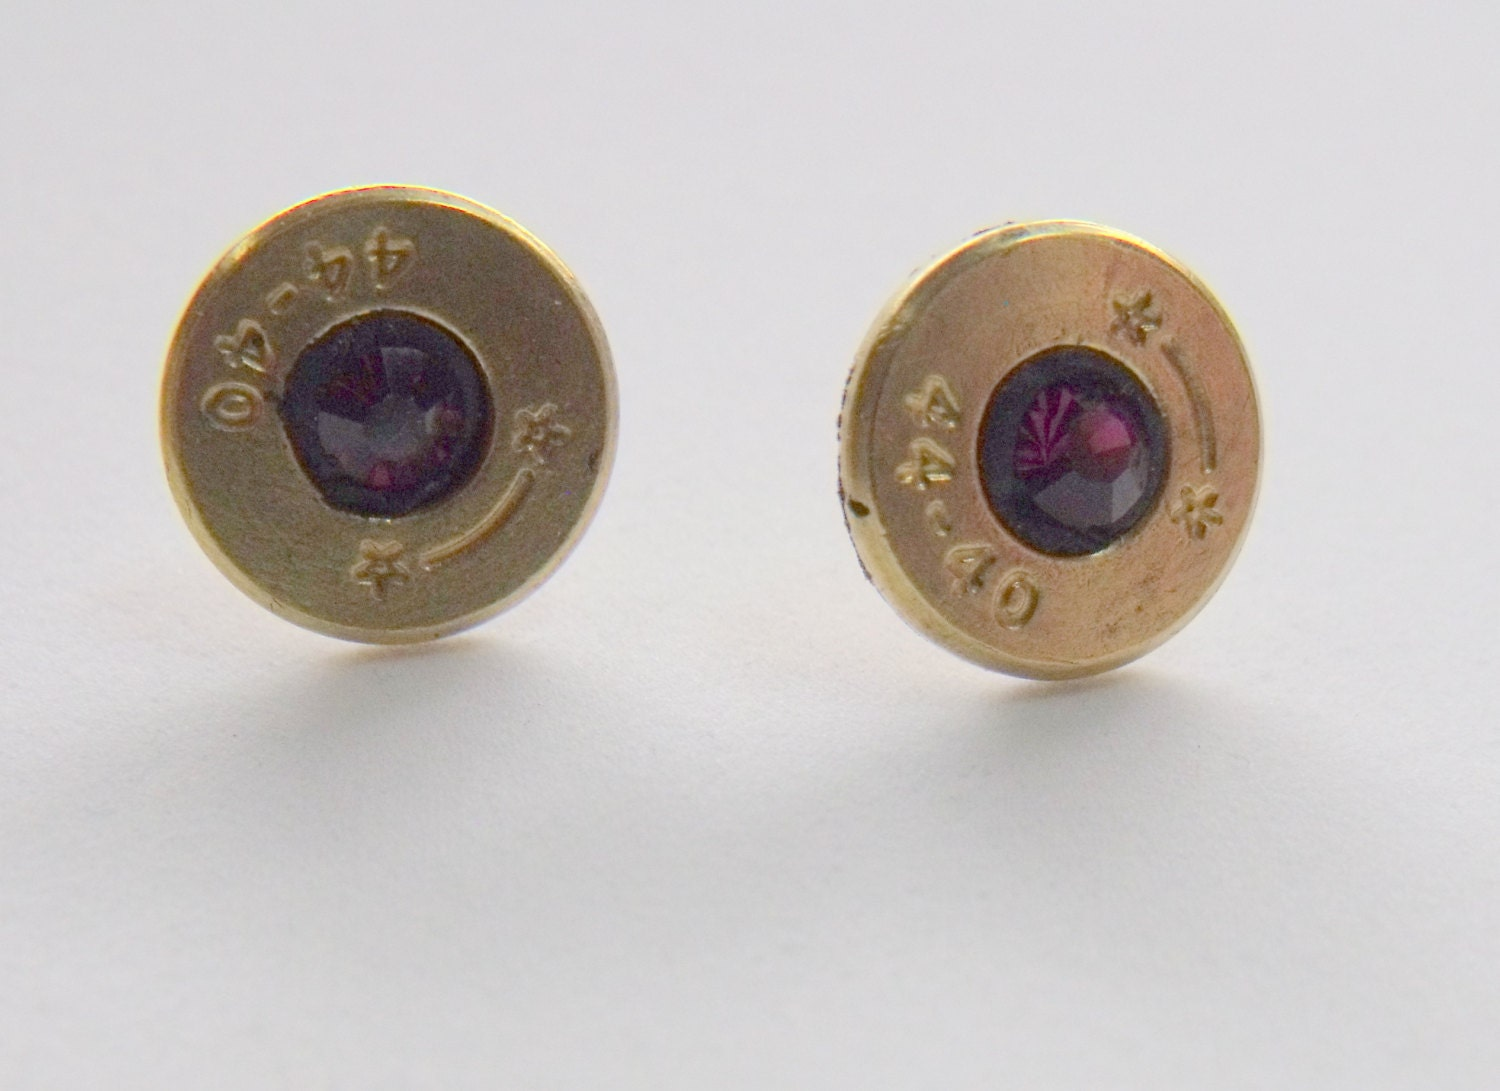 jewelry bullet earrings stud post style from recycled 44 40